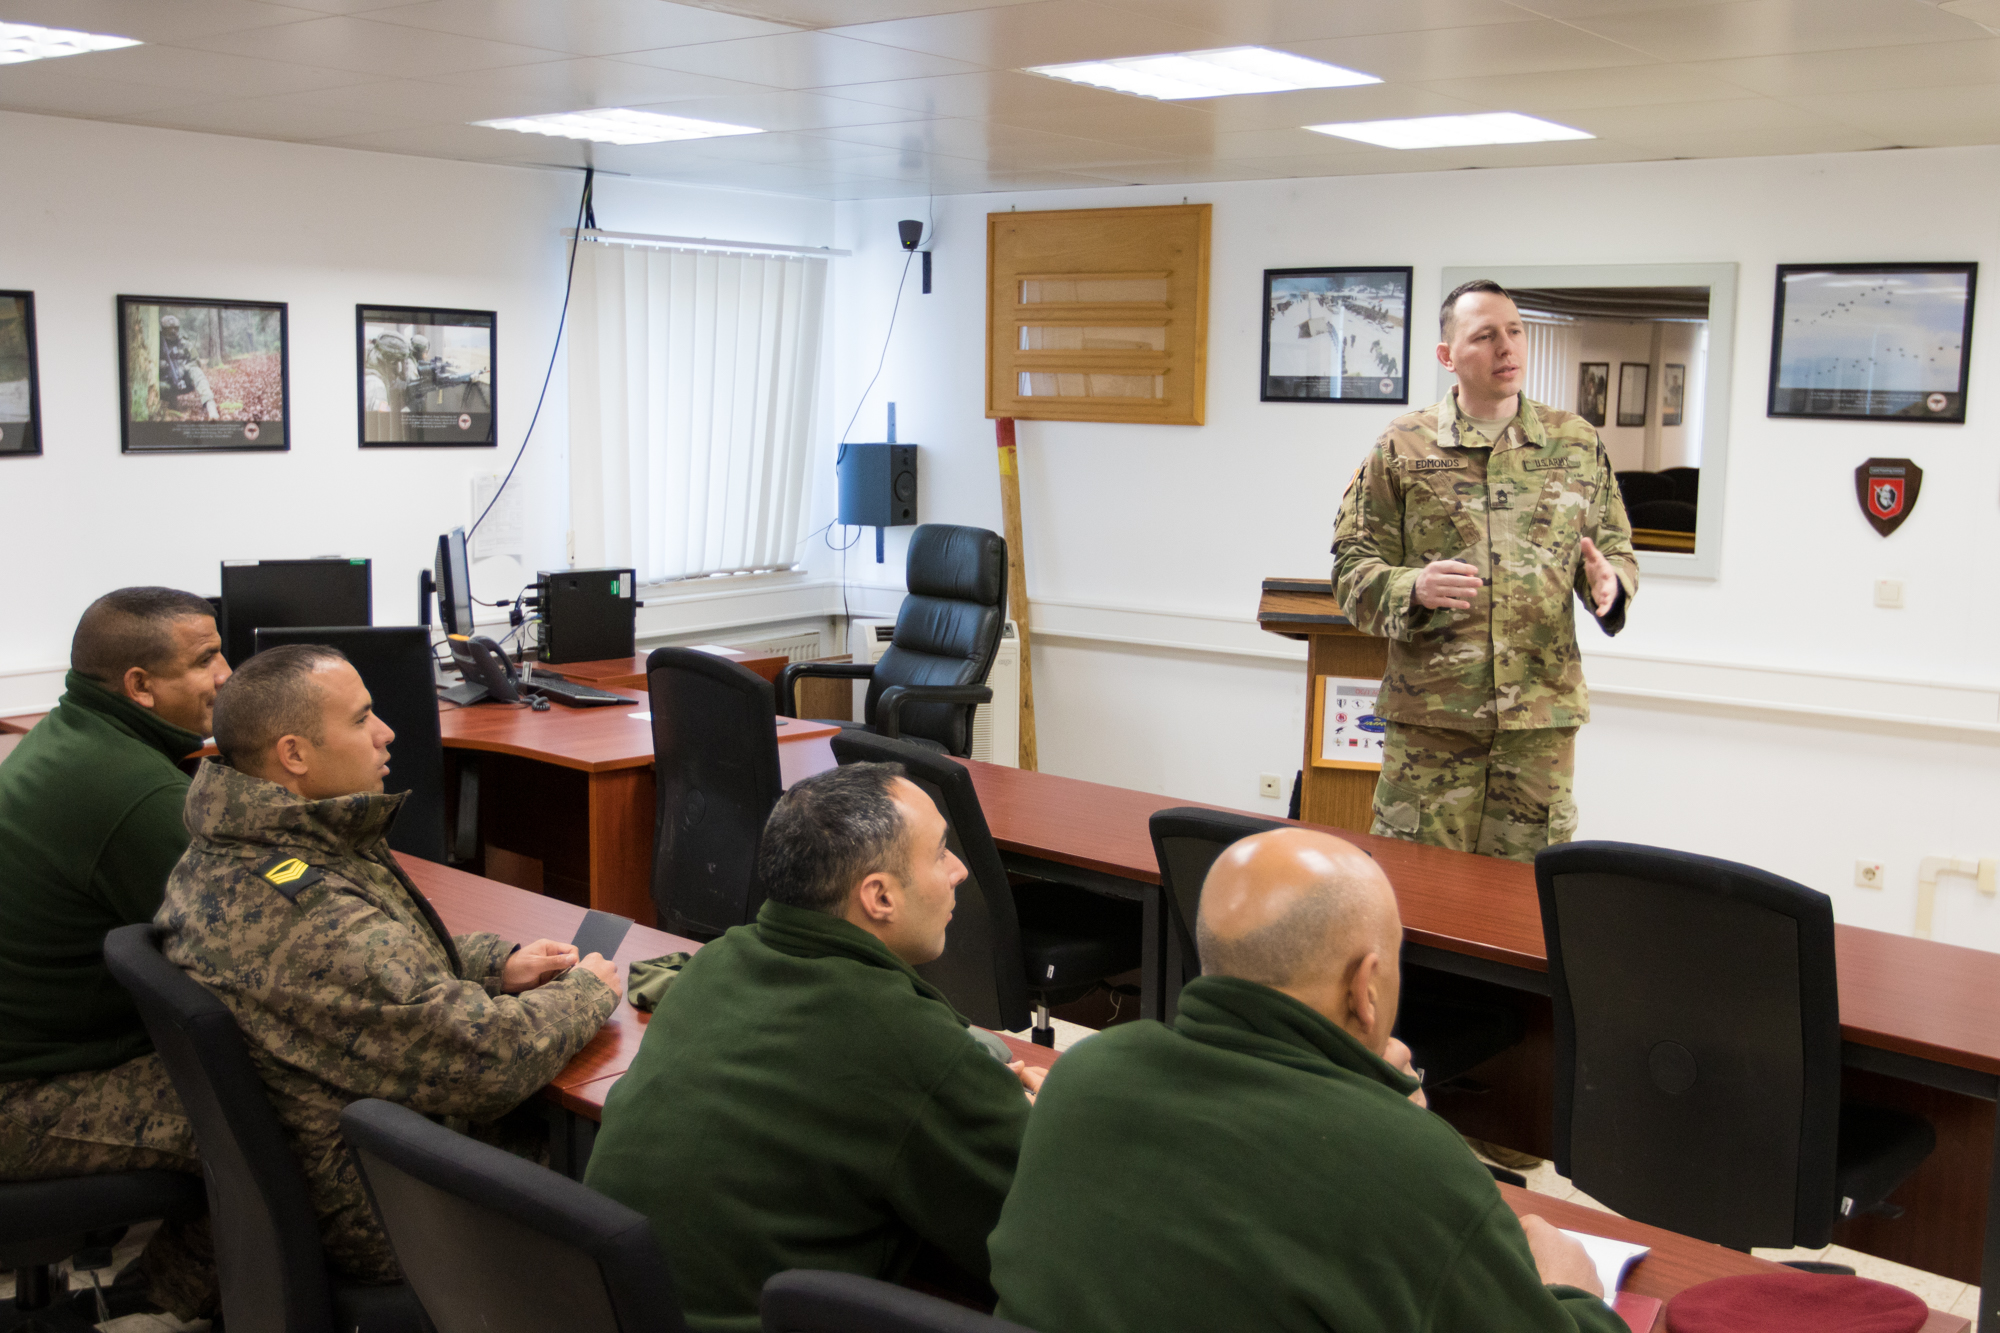 Sgt. First Class Lee Edmonds teaches a group of Tunisian officers and NCOs to be Observer Coach Trainers during Allied Spirit VI at Joint Multinational Readiness Center, Hohenfels Training Area, Germany, March 16, 2017. Allied Spirit VI reinforces the relationships in Europe that have been building during the last 70 years, and provides unsurpassed capability in a strategic and vital location. (Photos by U.S. Army Sgt. William Frye/Released)